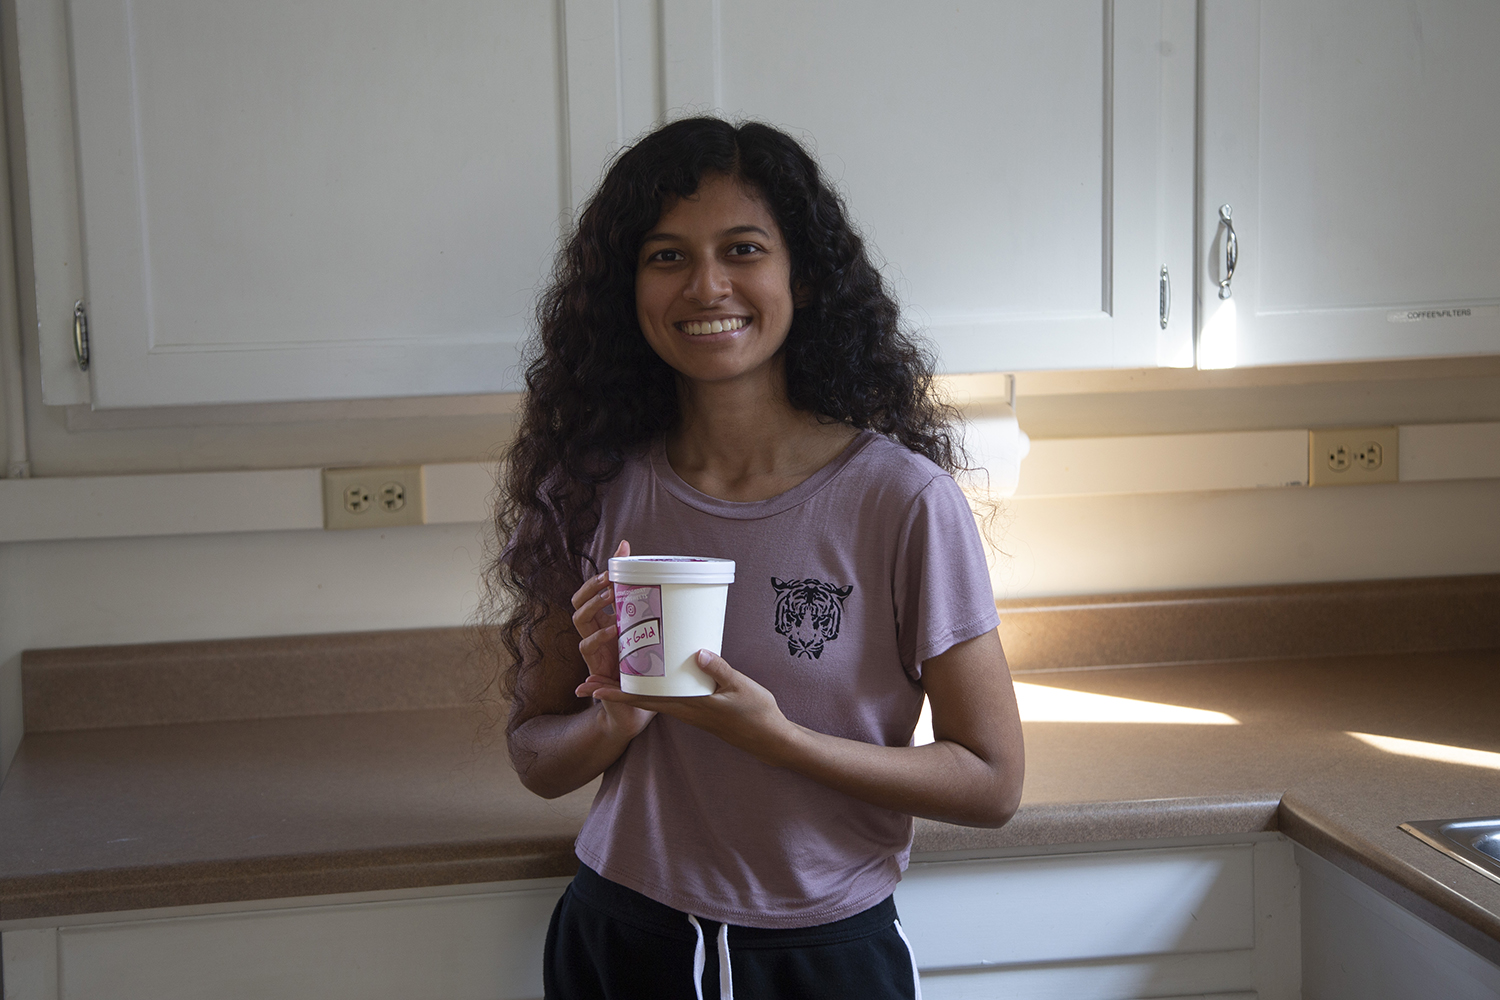 Sugar Fiend Sweets owner Ramya Kolusu poses for a portrait with a pint of her Black & Gold ice cream in the kitchen of the Bedell Entrepreneurship Learning Laboratory on Friday, Sept. 20, 2019. Kolusu is in her final semester at the University of Iowa and was inspired to start her own ice cream business by a now-closed ice cream shop in her hometown, Clinton, Iowa. She began making her own ice cream approximately three years ago after learning from videos online.